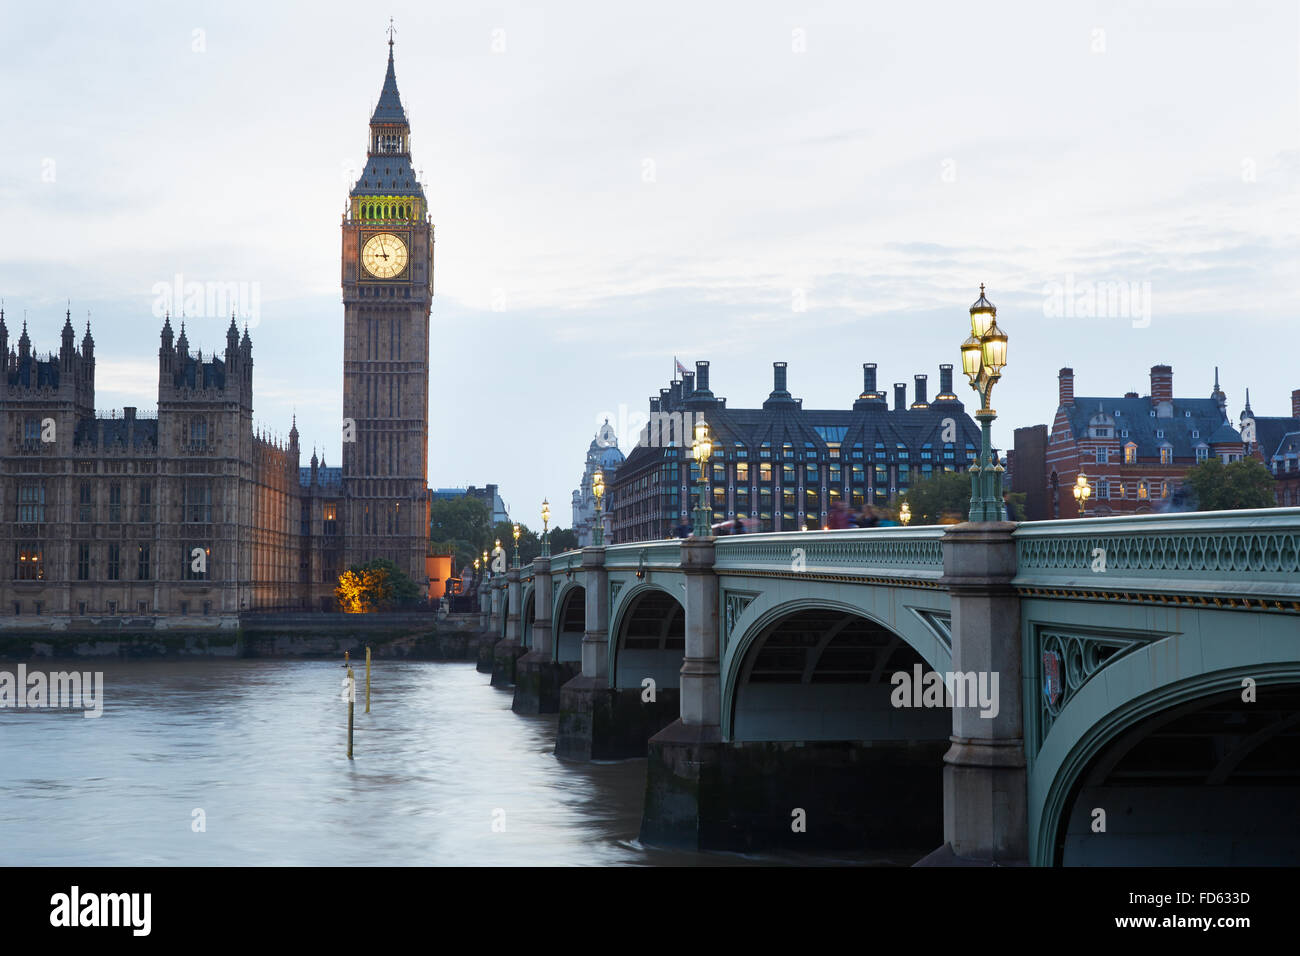 Big Ben and Houses of parliament at dusk in London, natural light and colors Stock Photo